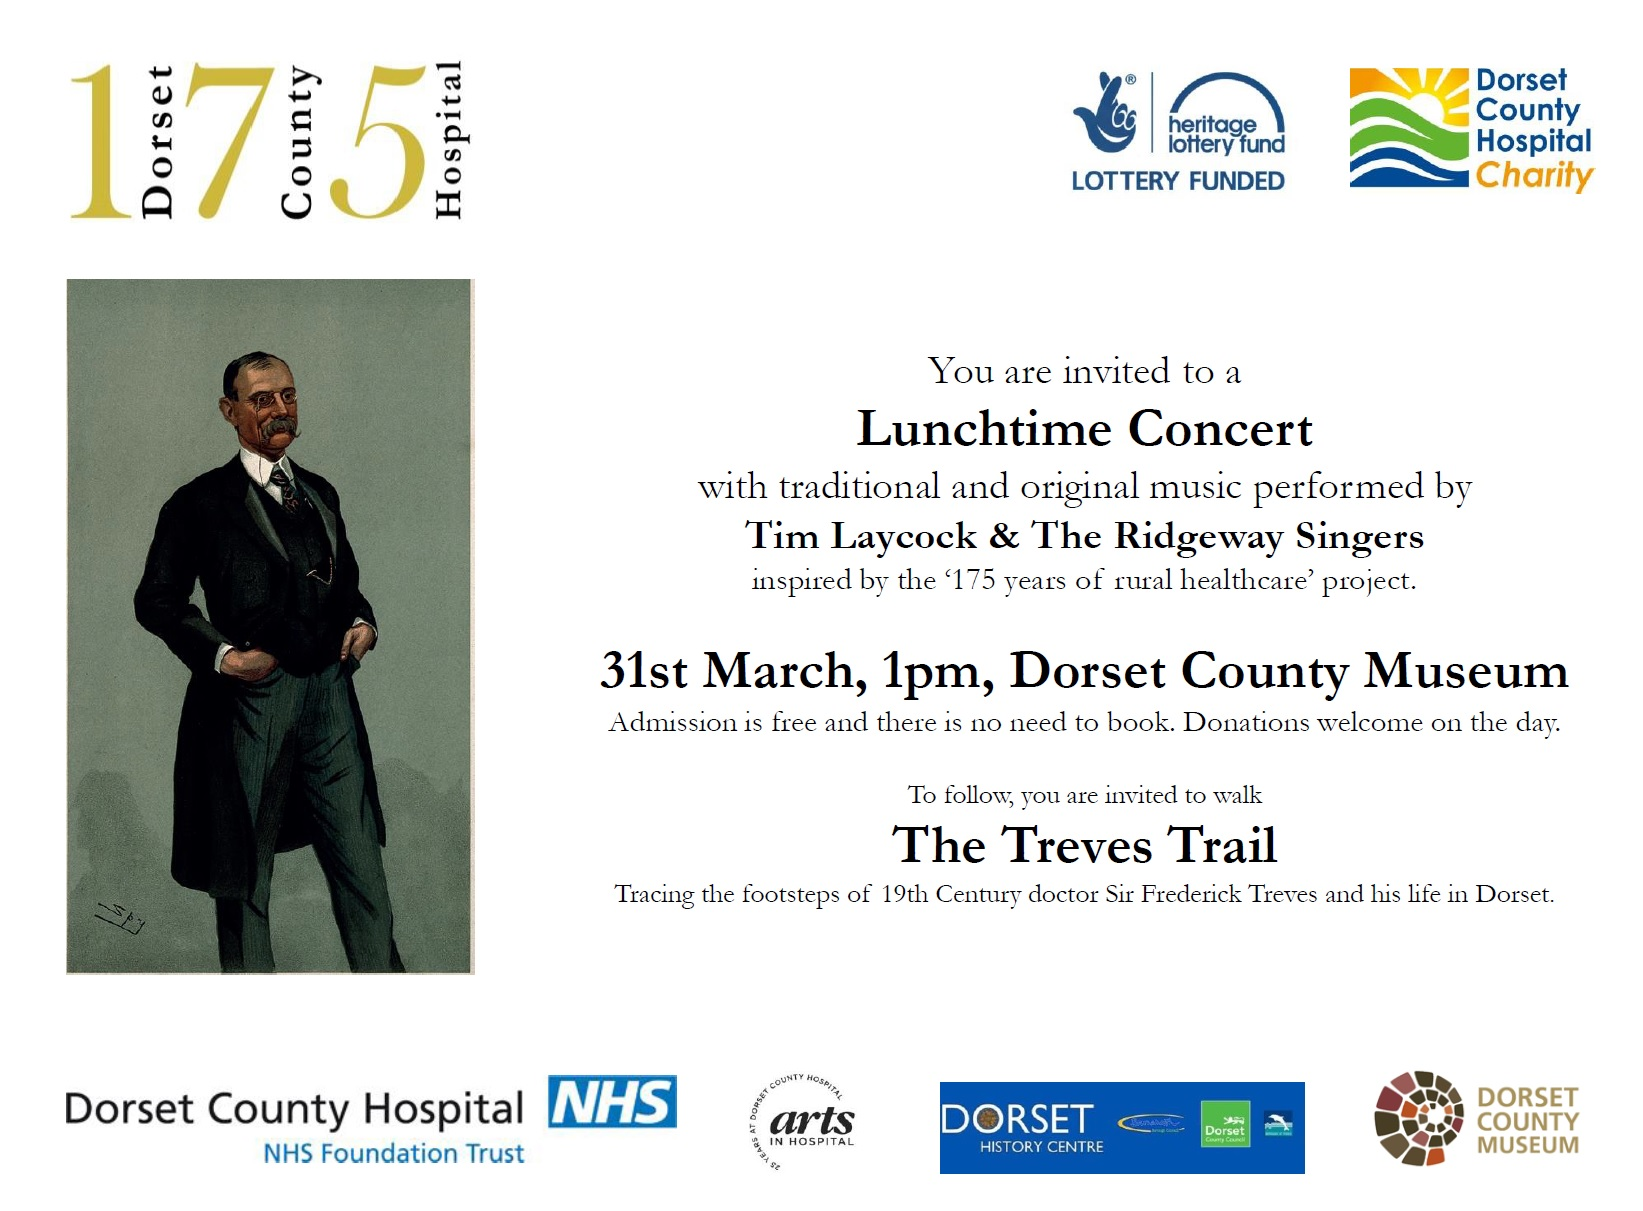 Archive 2016 the history of dorset county hospital an invitation to the final event to mark the hospitals 175th anniversary celebrations stopboris